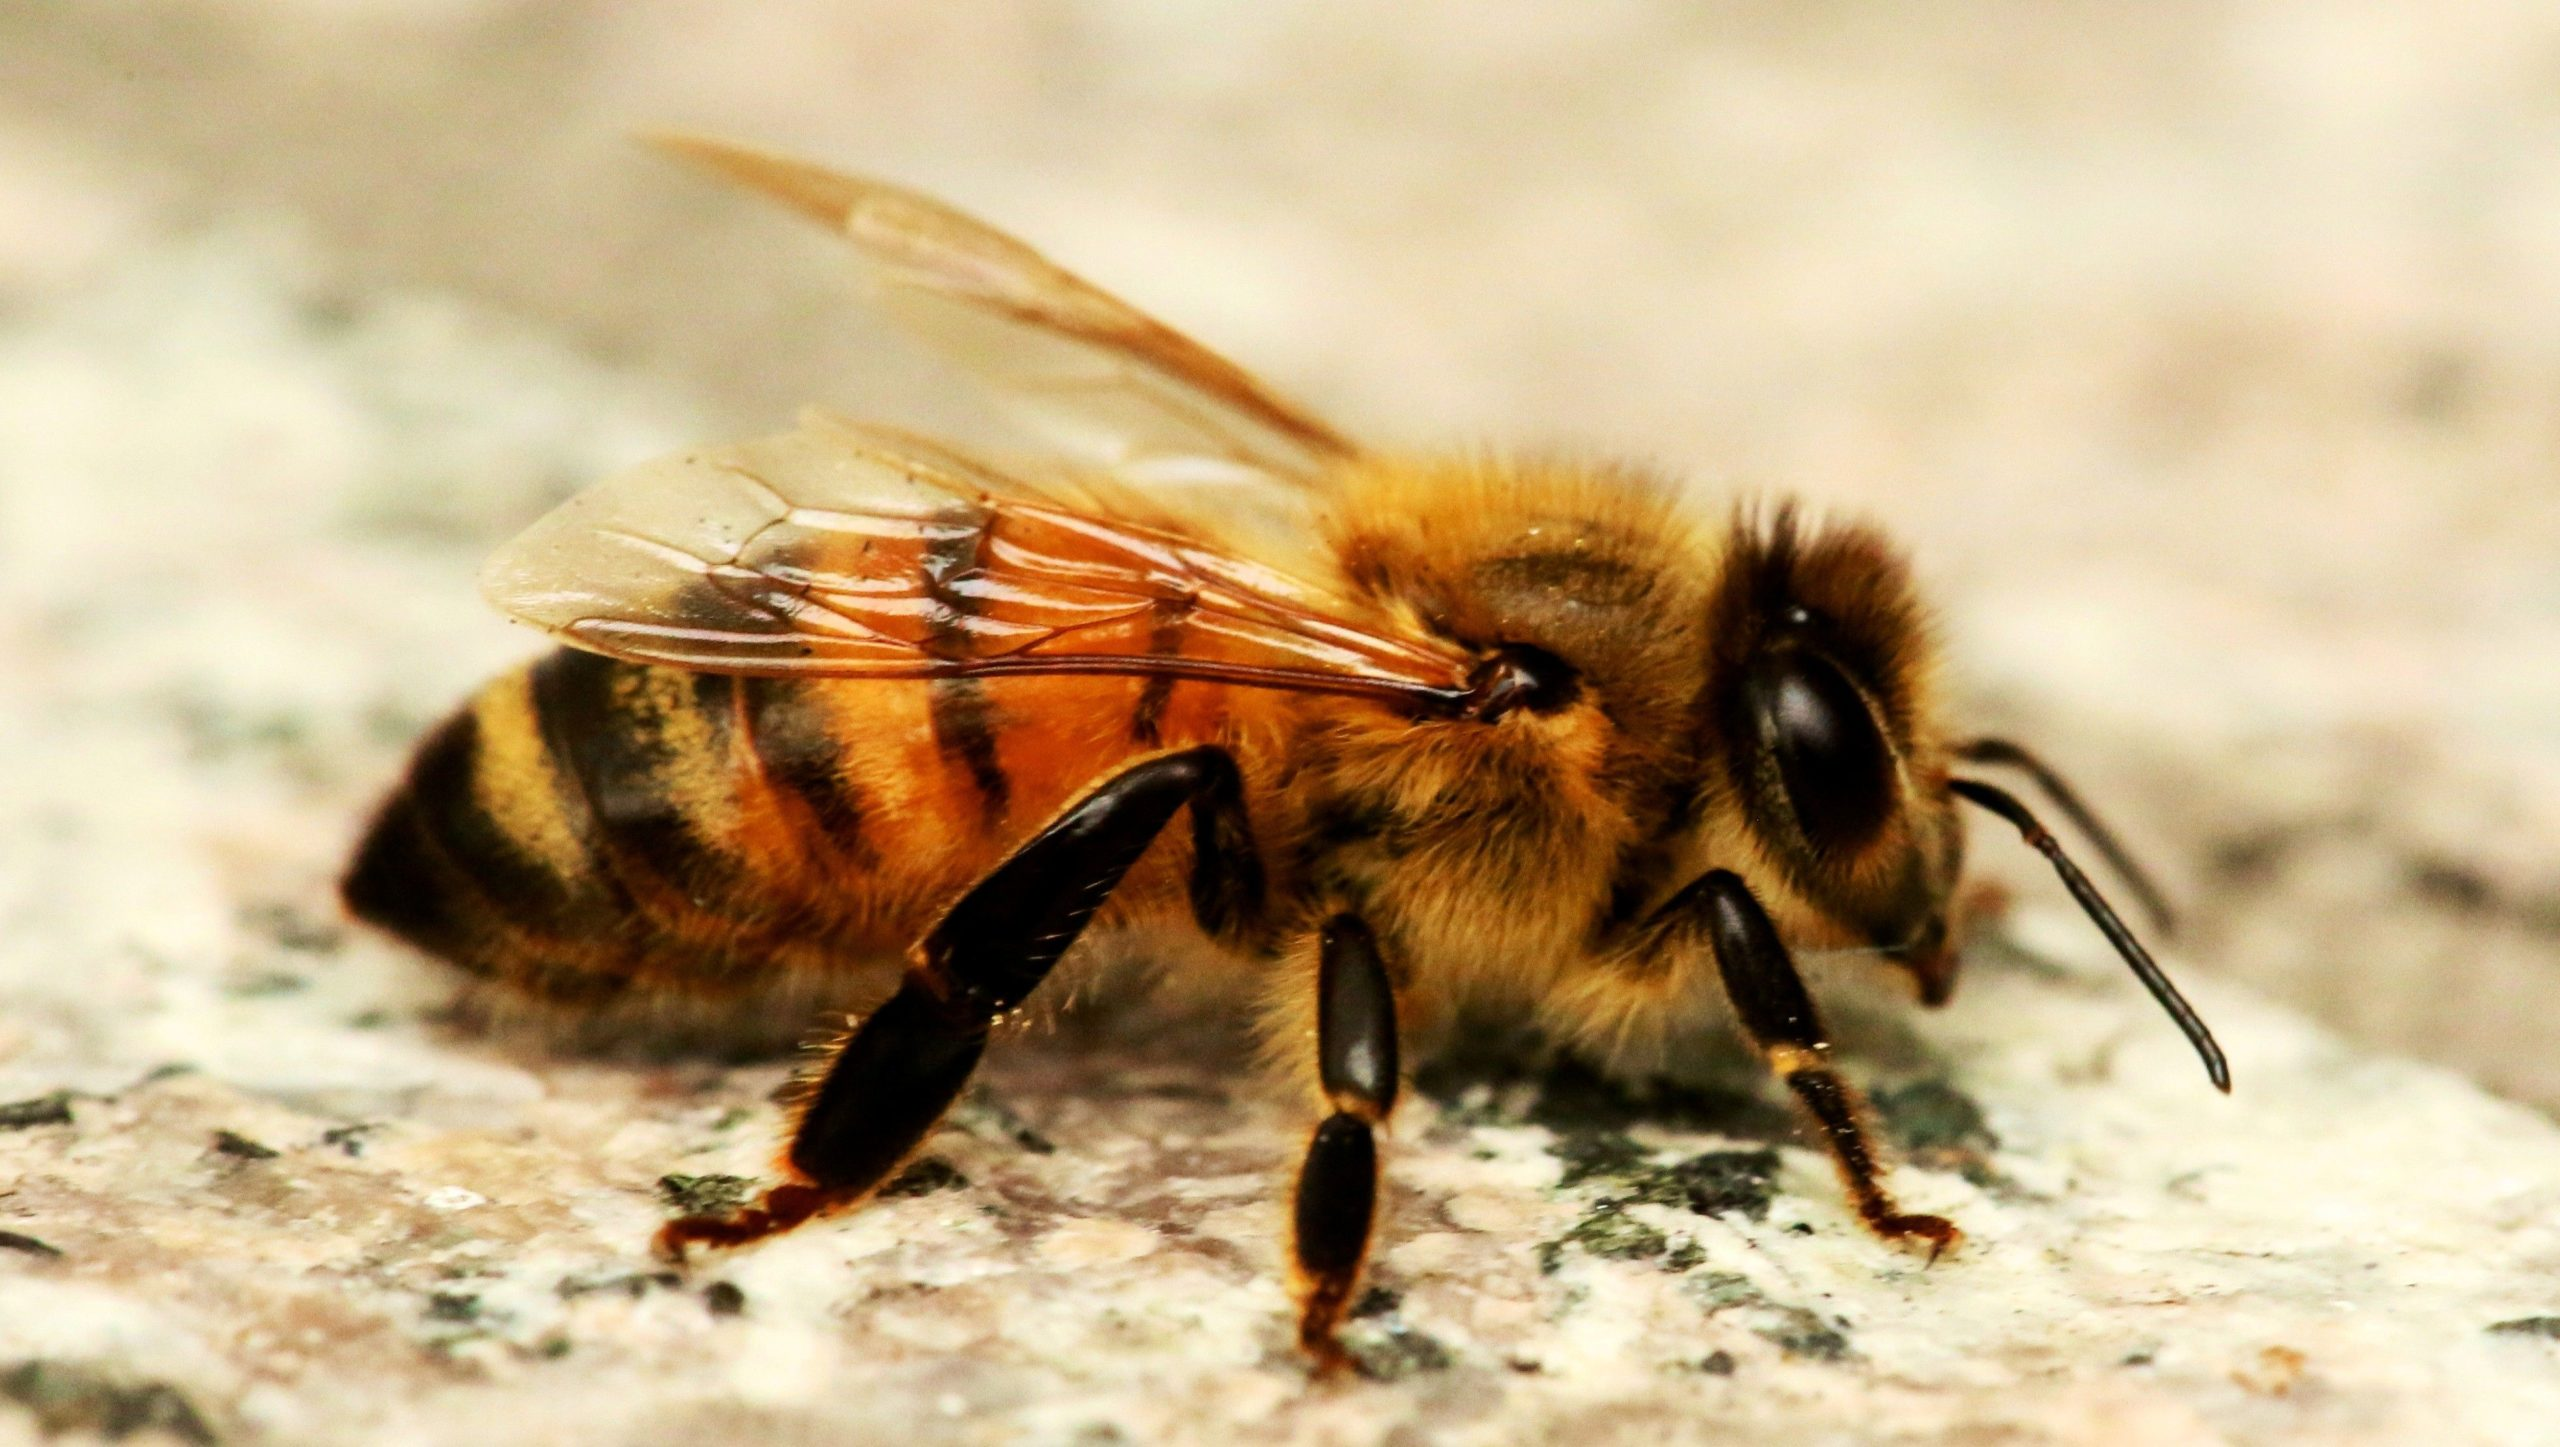 a picture of a bee